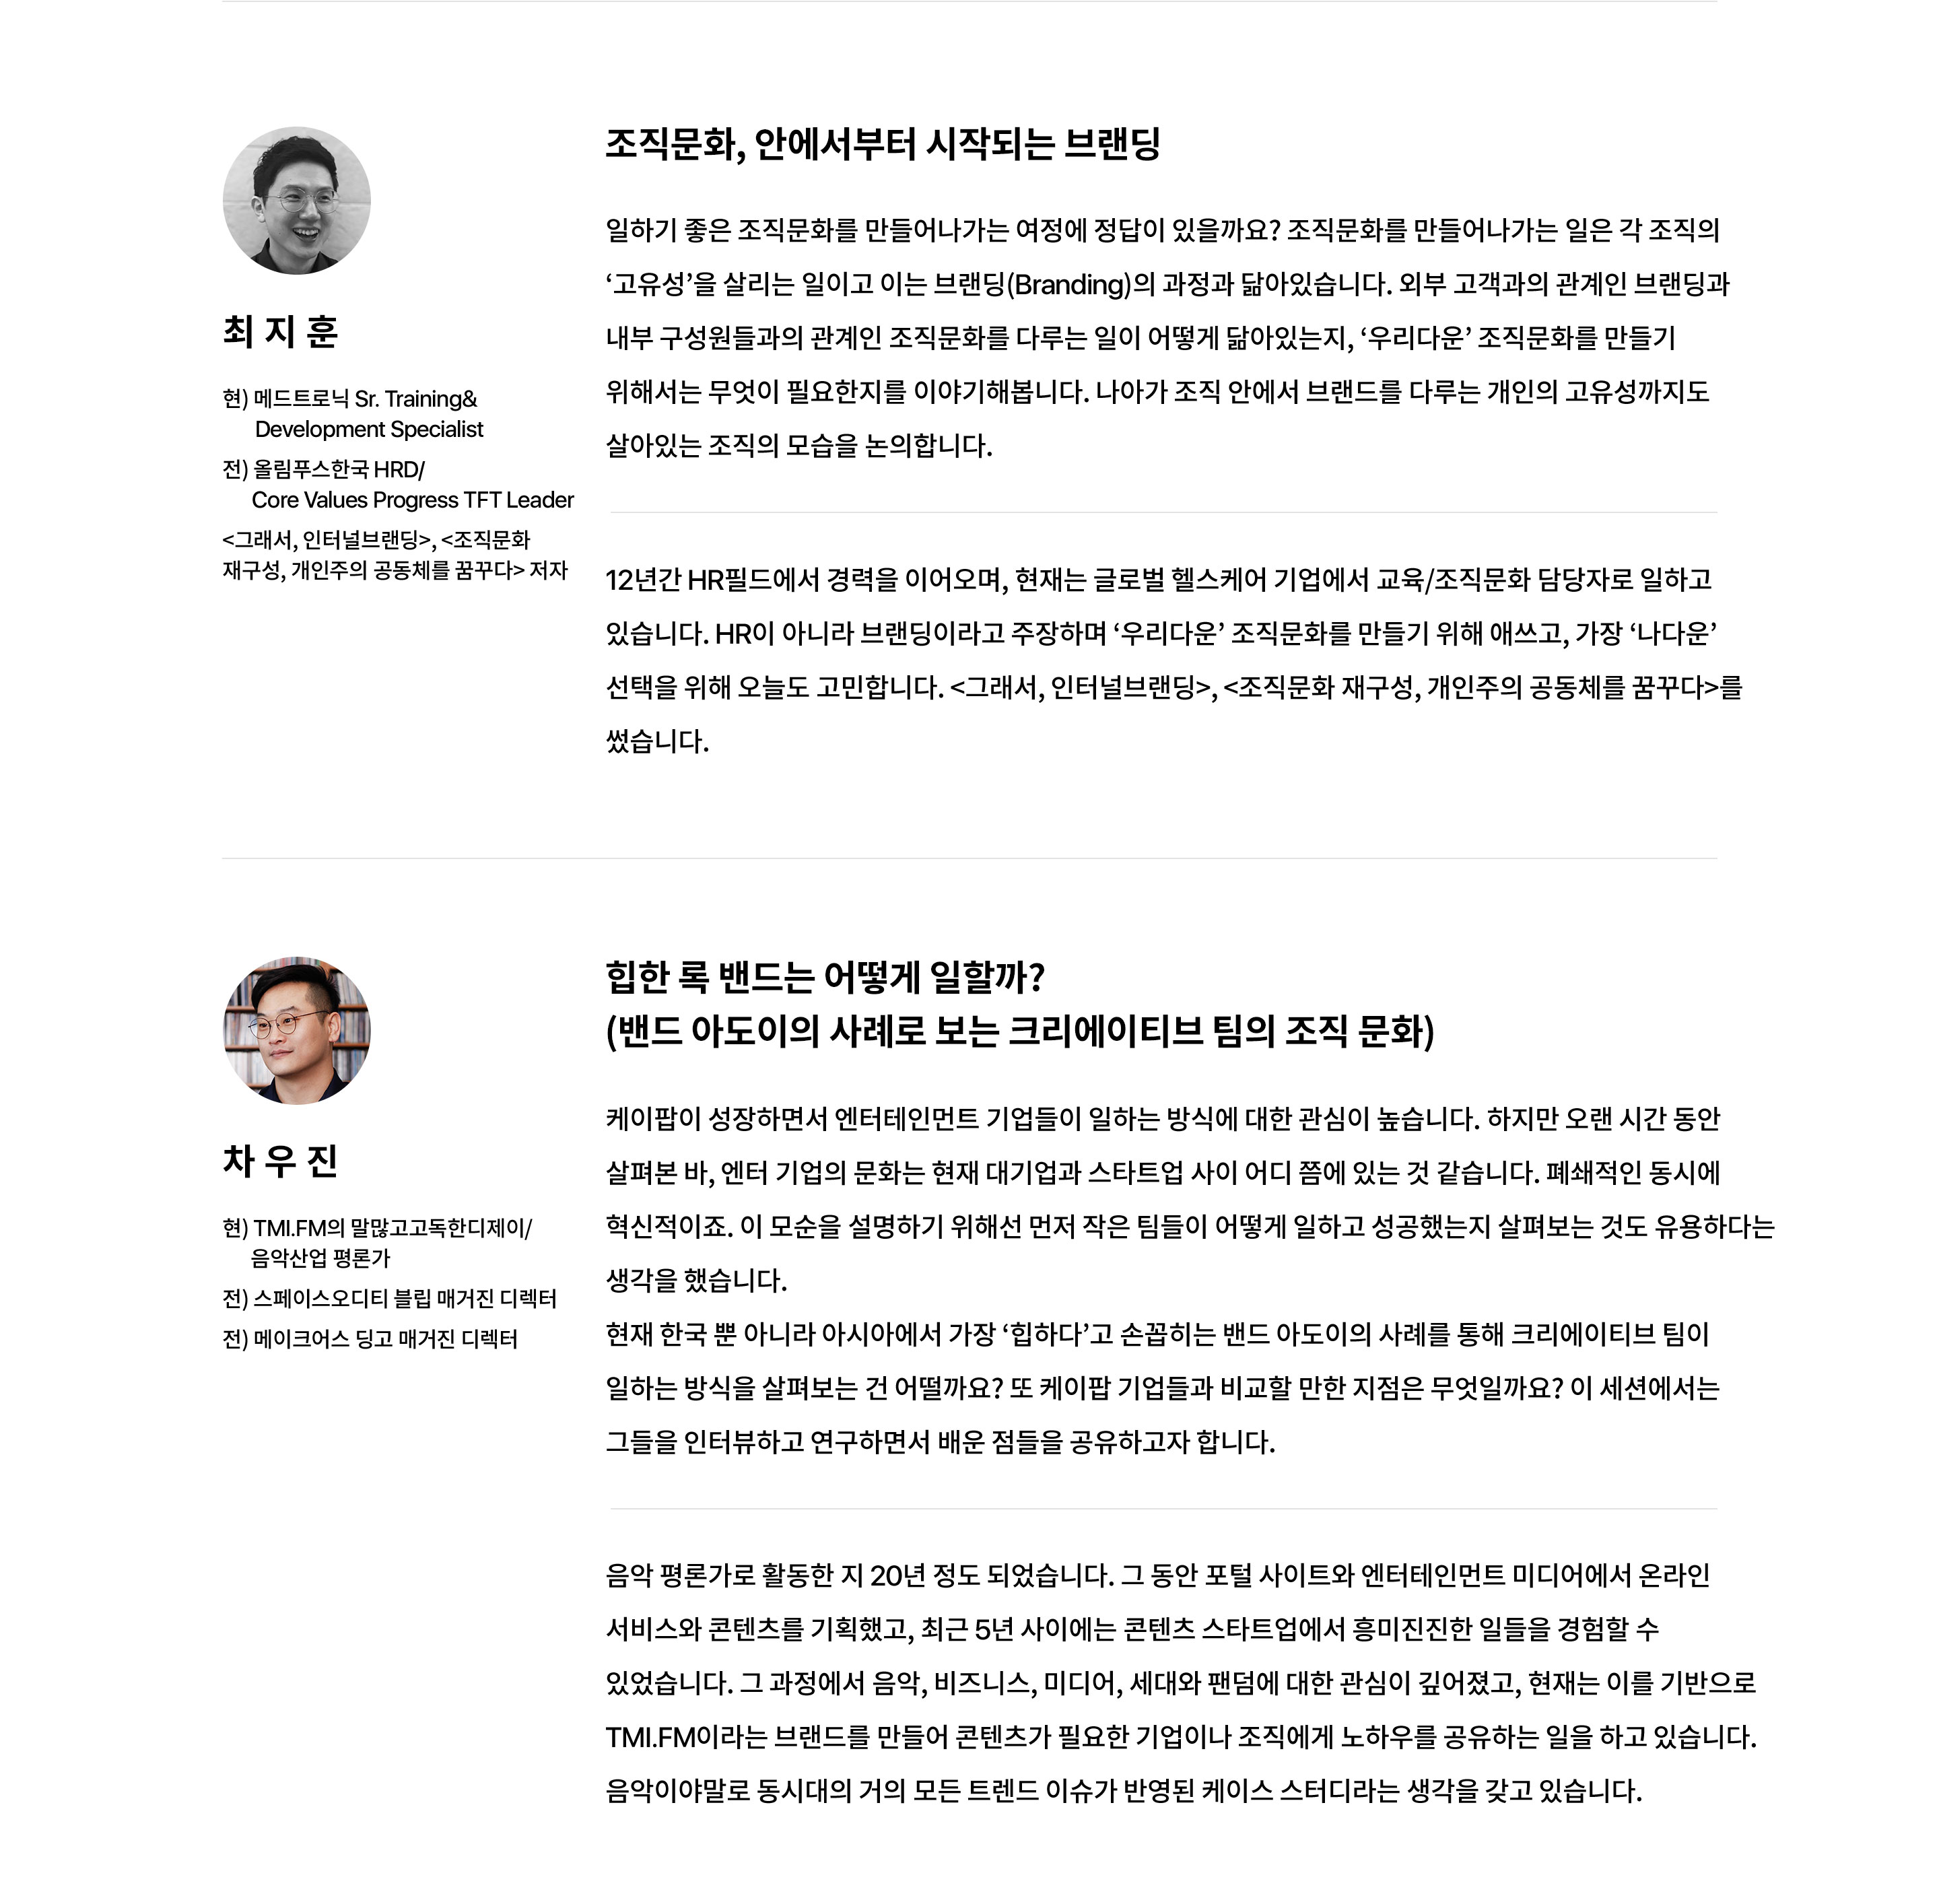 https://static.wanted.co.kr/images/events/975/c48214db.jpg